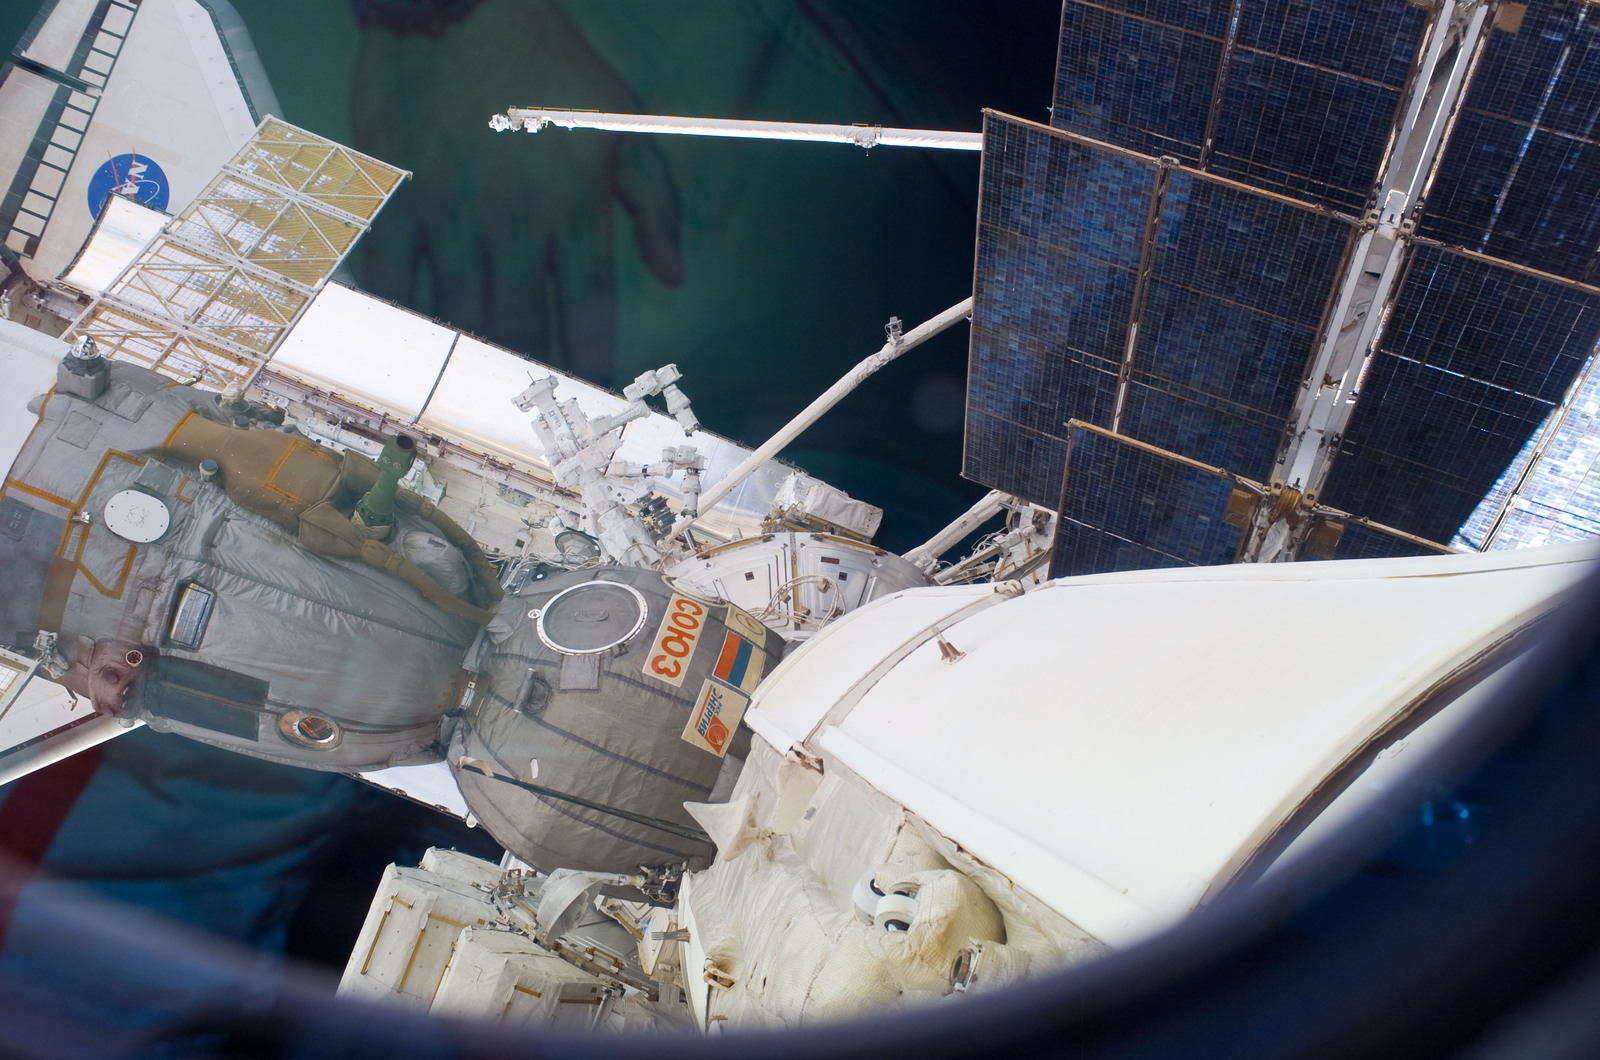 S123E008344 - STS-123 - Space Shuttle Endeavour and Dextre taken during Joint Operations